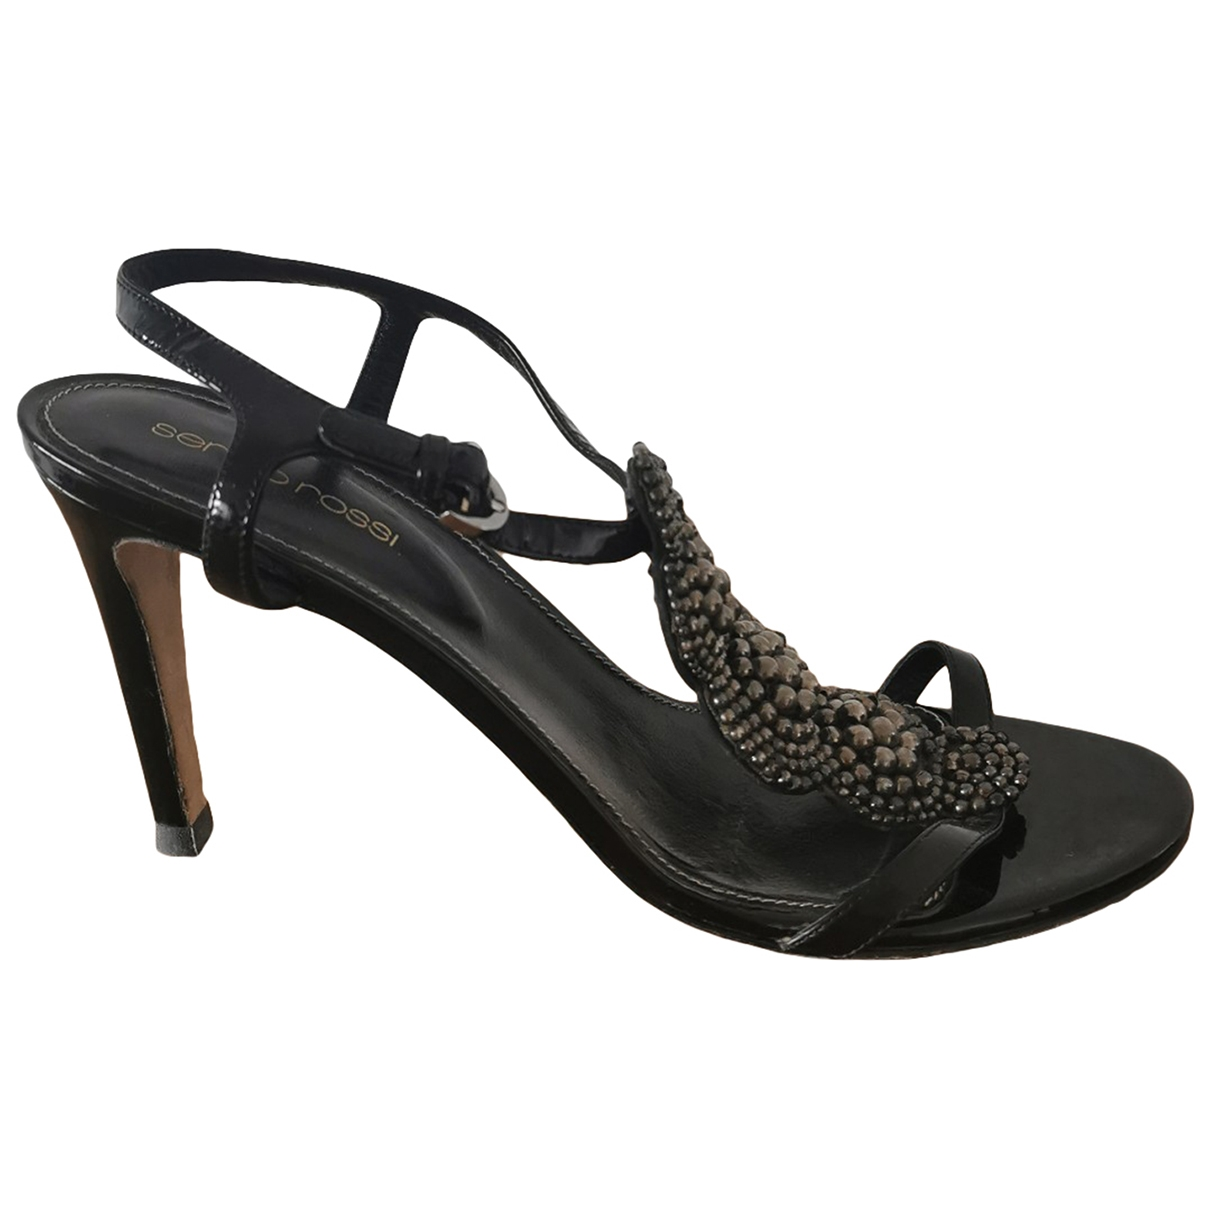 Sergio Rossi \N Black Patent leather Sandals for Women 39 EU